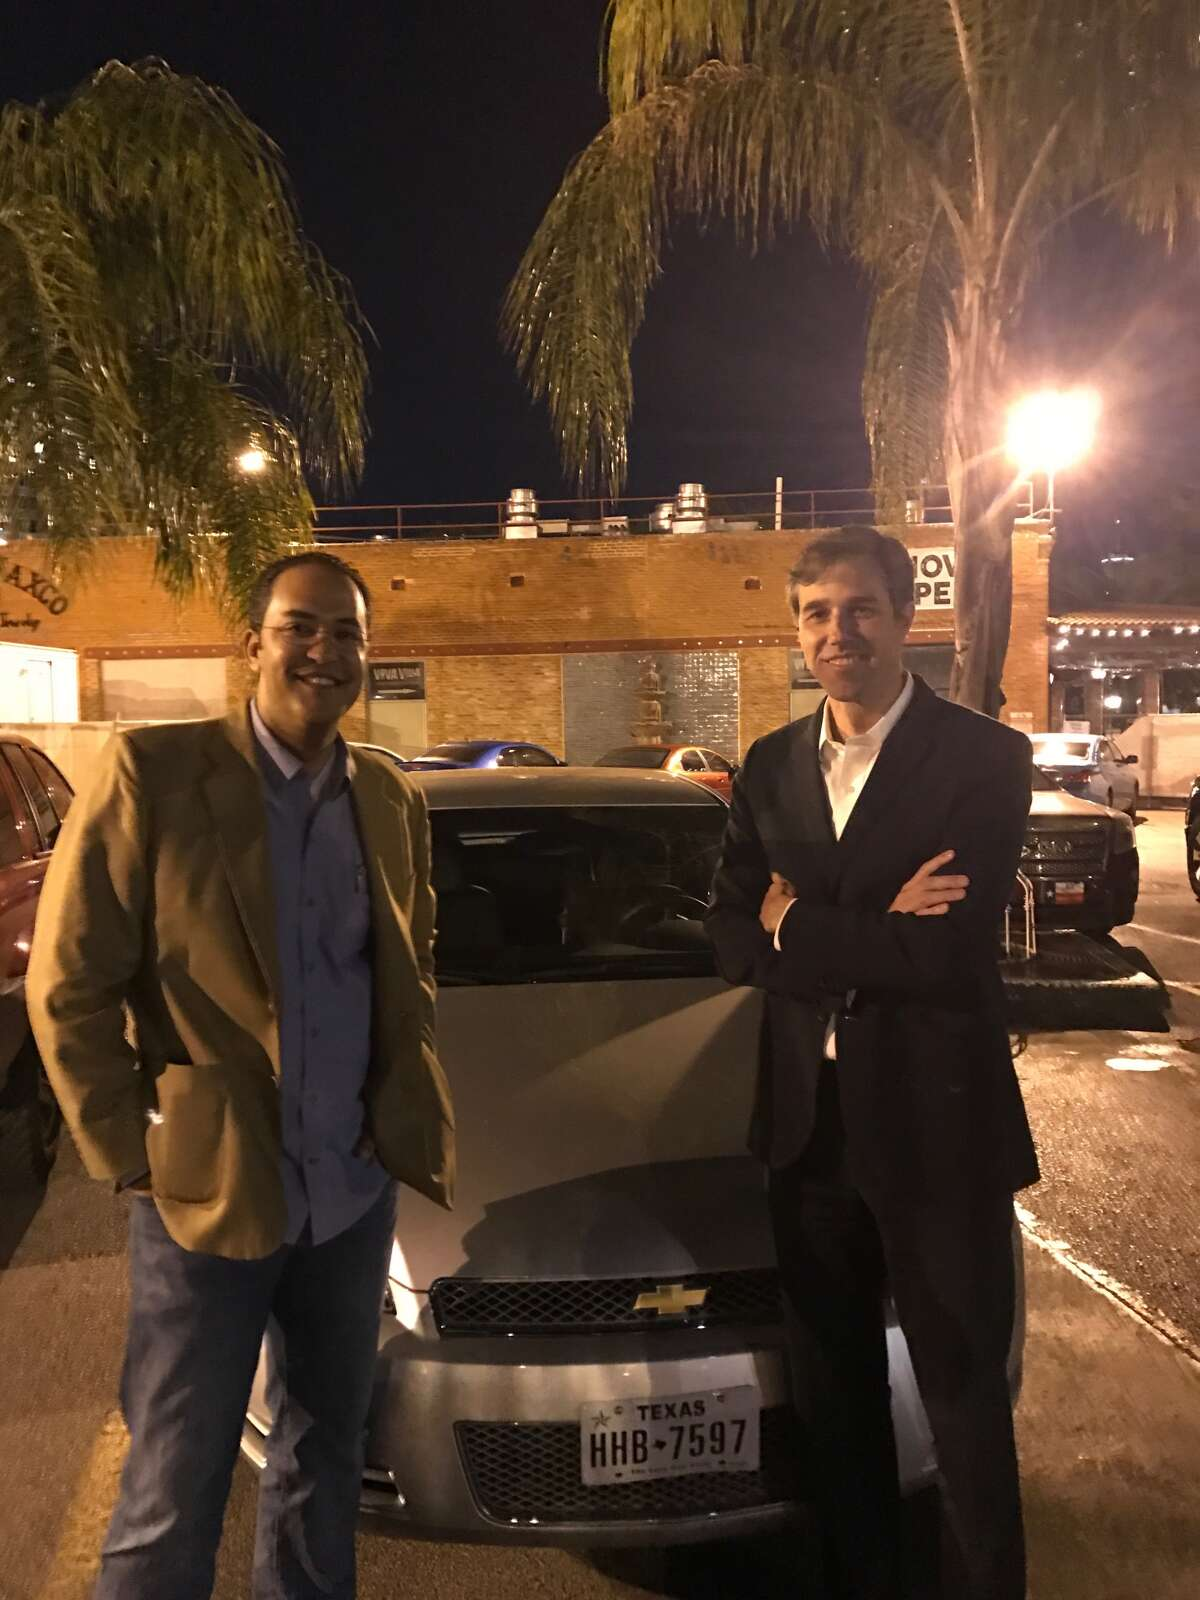 Two U.S. representatives from Texas -- Rep. Will Hurd, R-Southwest Texas, on the left, and Democratic Rep. Beto O'Rourke of El Paso. (Courtesy photo)